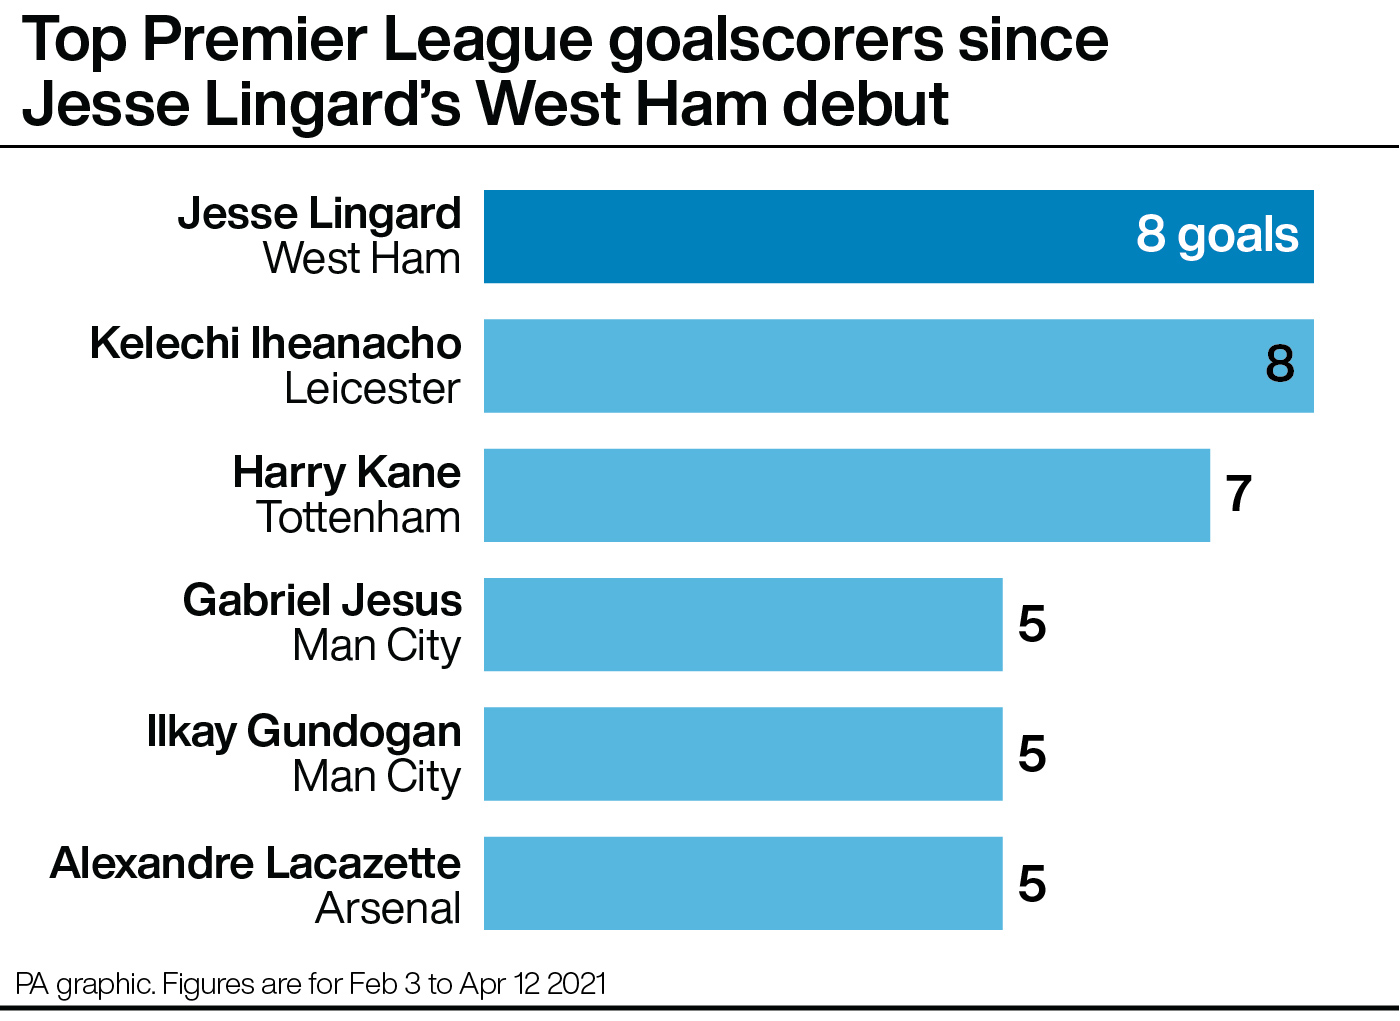 Premier League top goalscorers since Jesse Lingard's West Ham debut